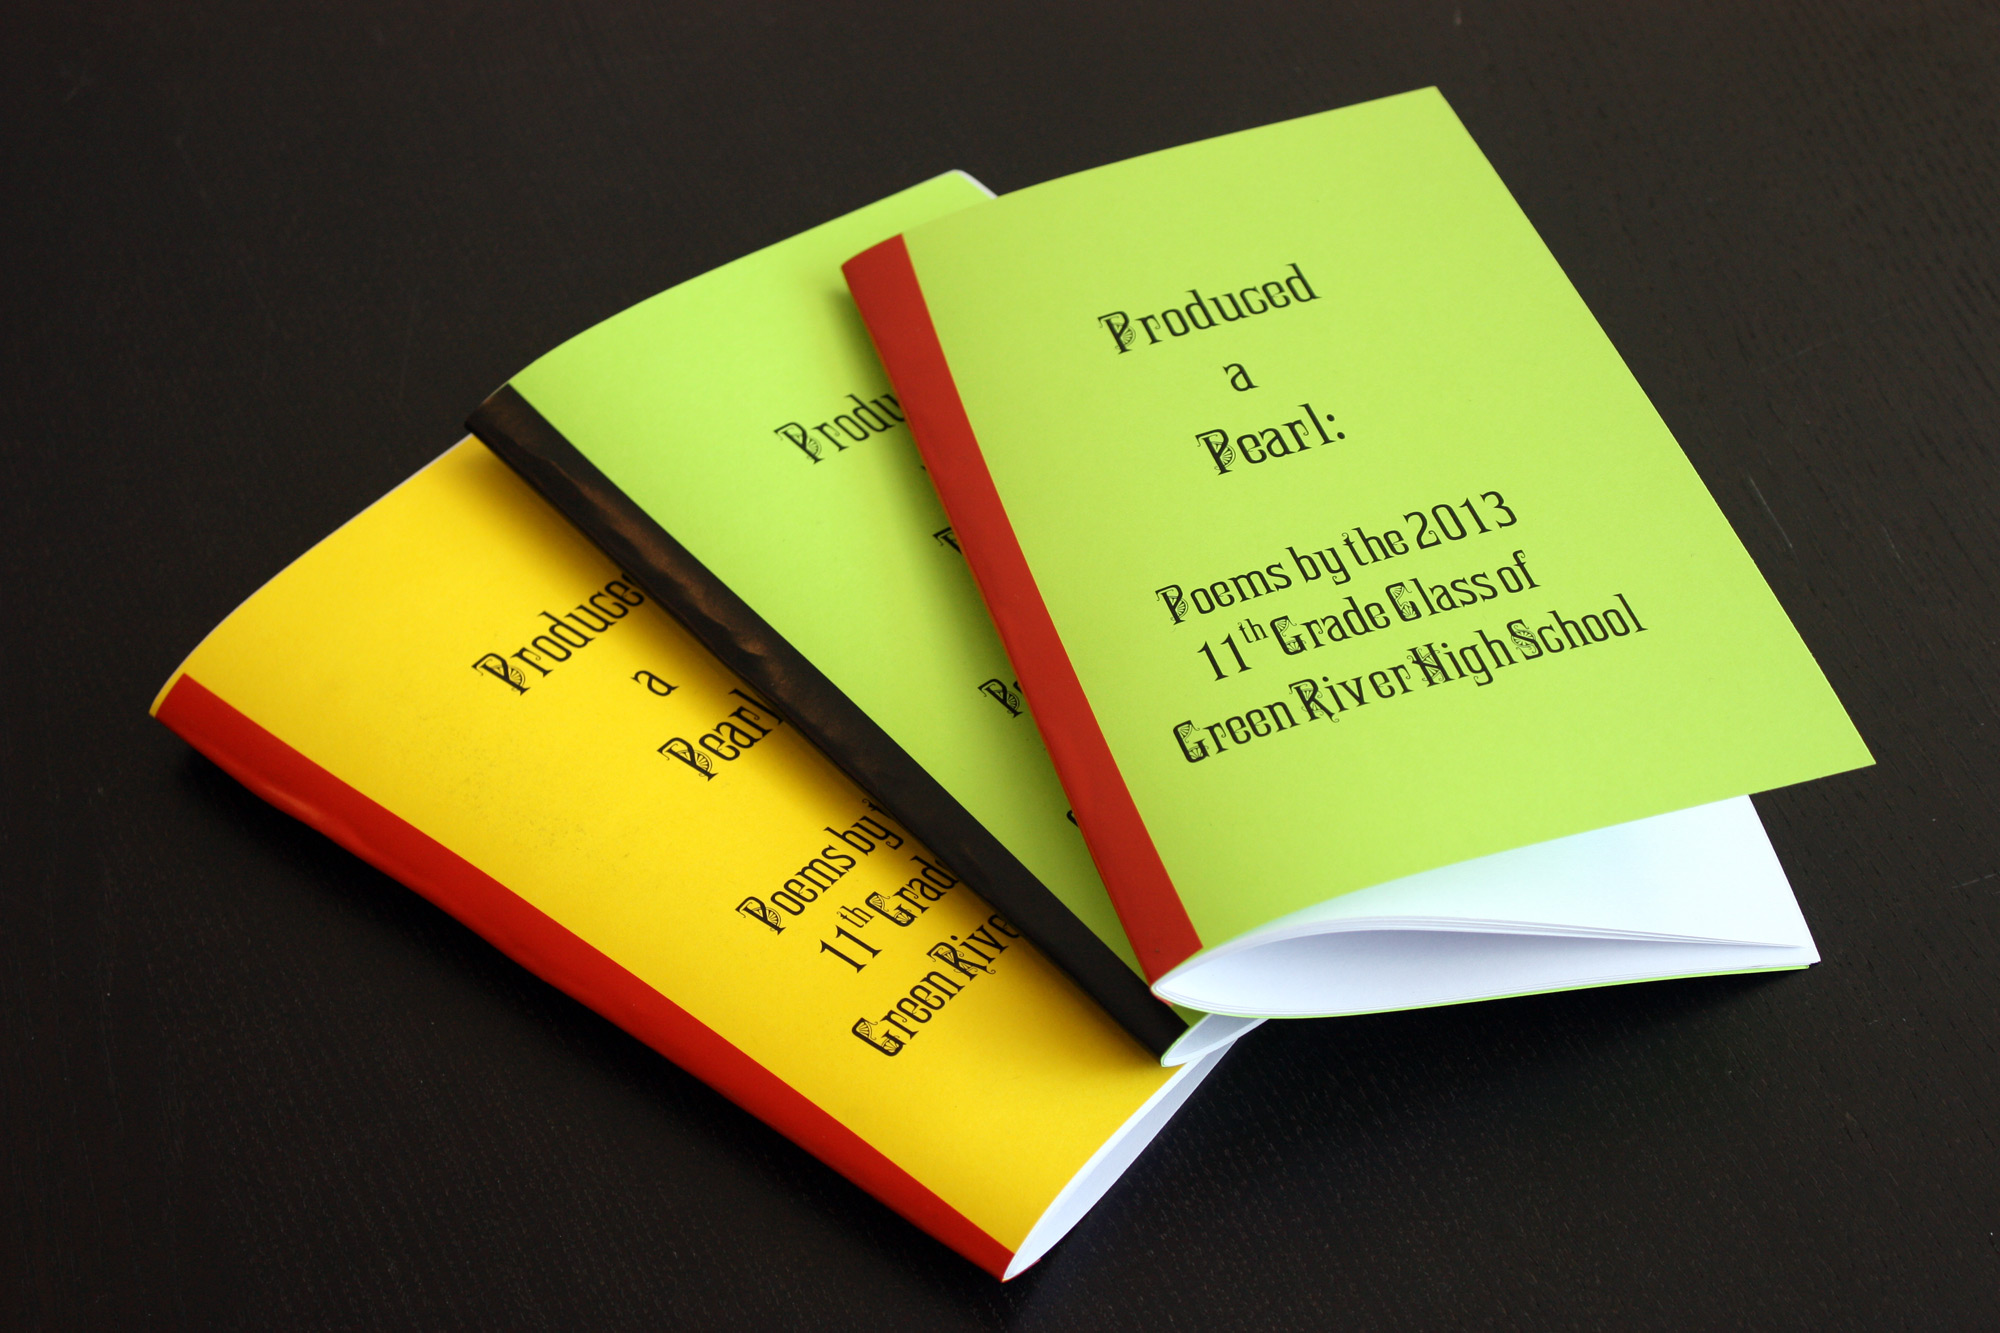 """Copies of the """"Produced A Pearl: Poems by the 2013 11th Grade Class of Green River High School"""" chapbook facilitated by Gina Abelkop"""